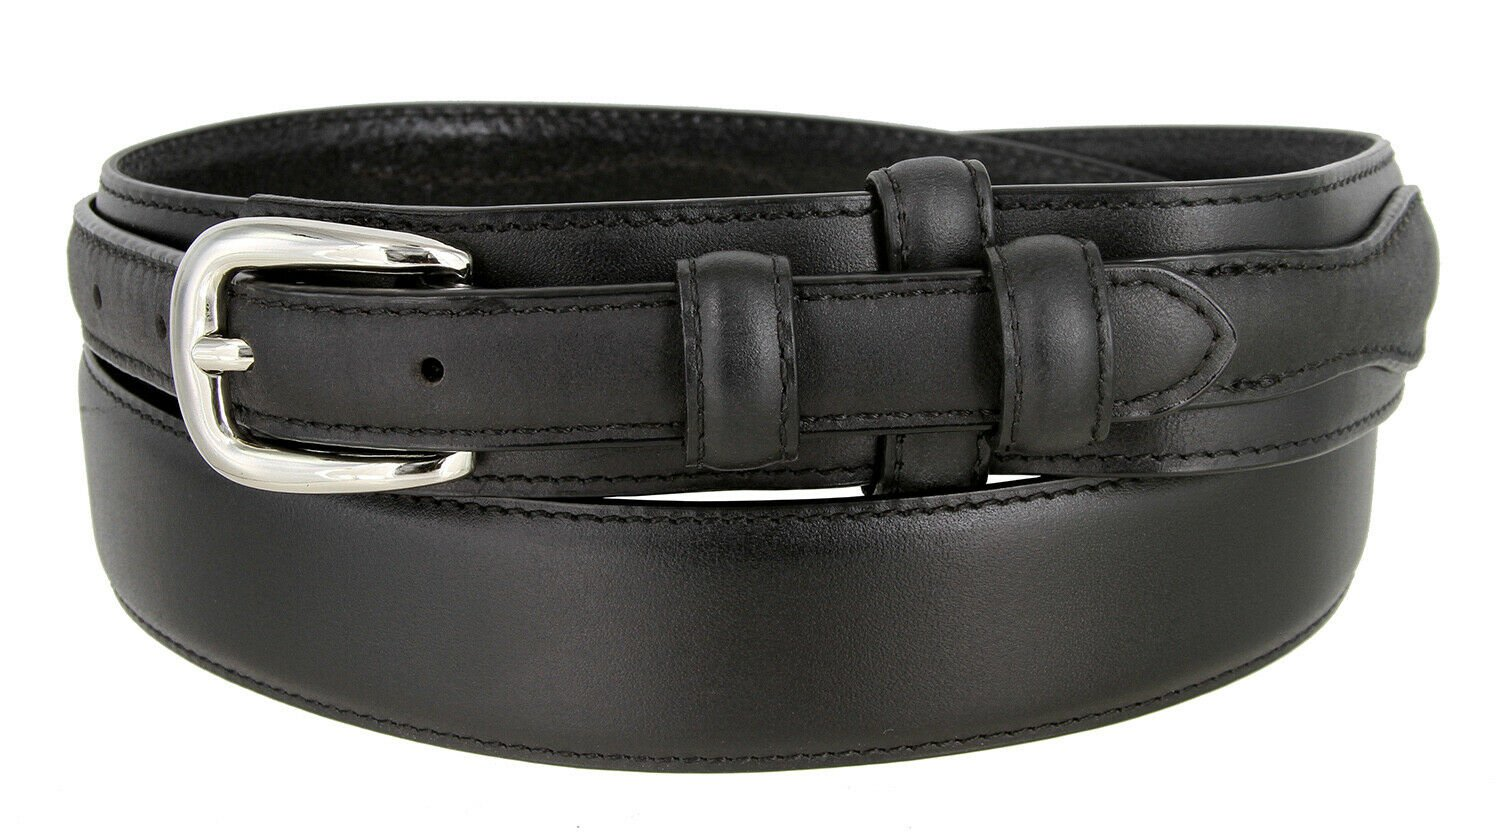 "Men's Belt Oil-Tanned Genuine Leather Ranger Belt 1-3/8"" Wide Size 50 Black"